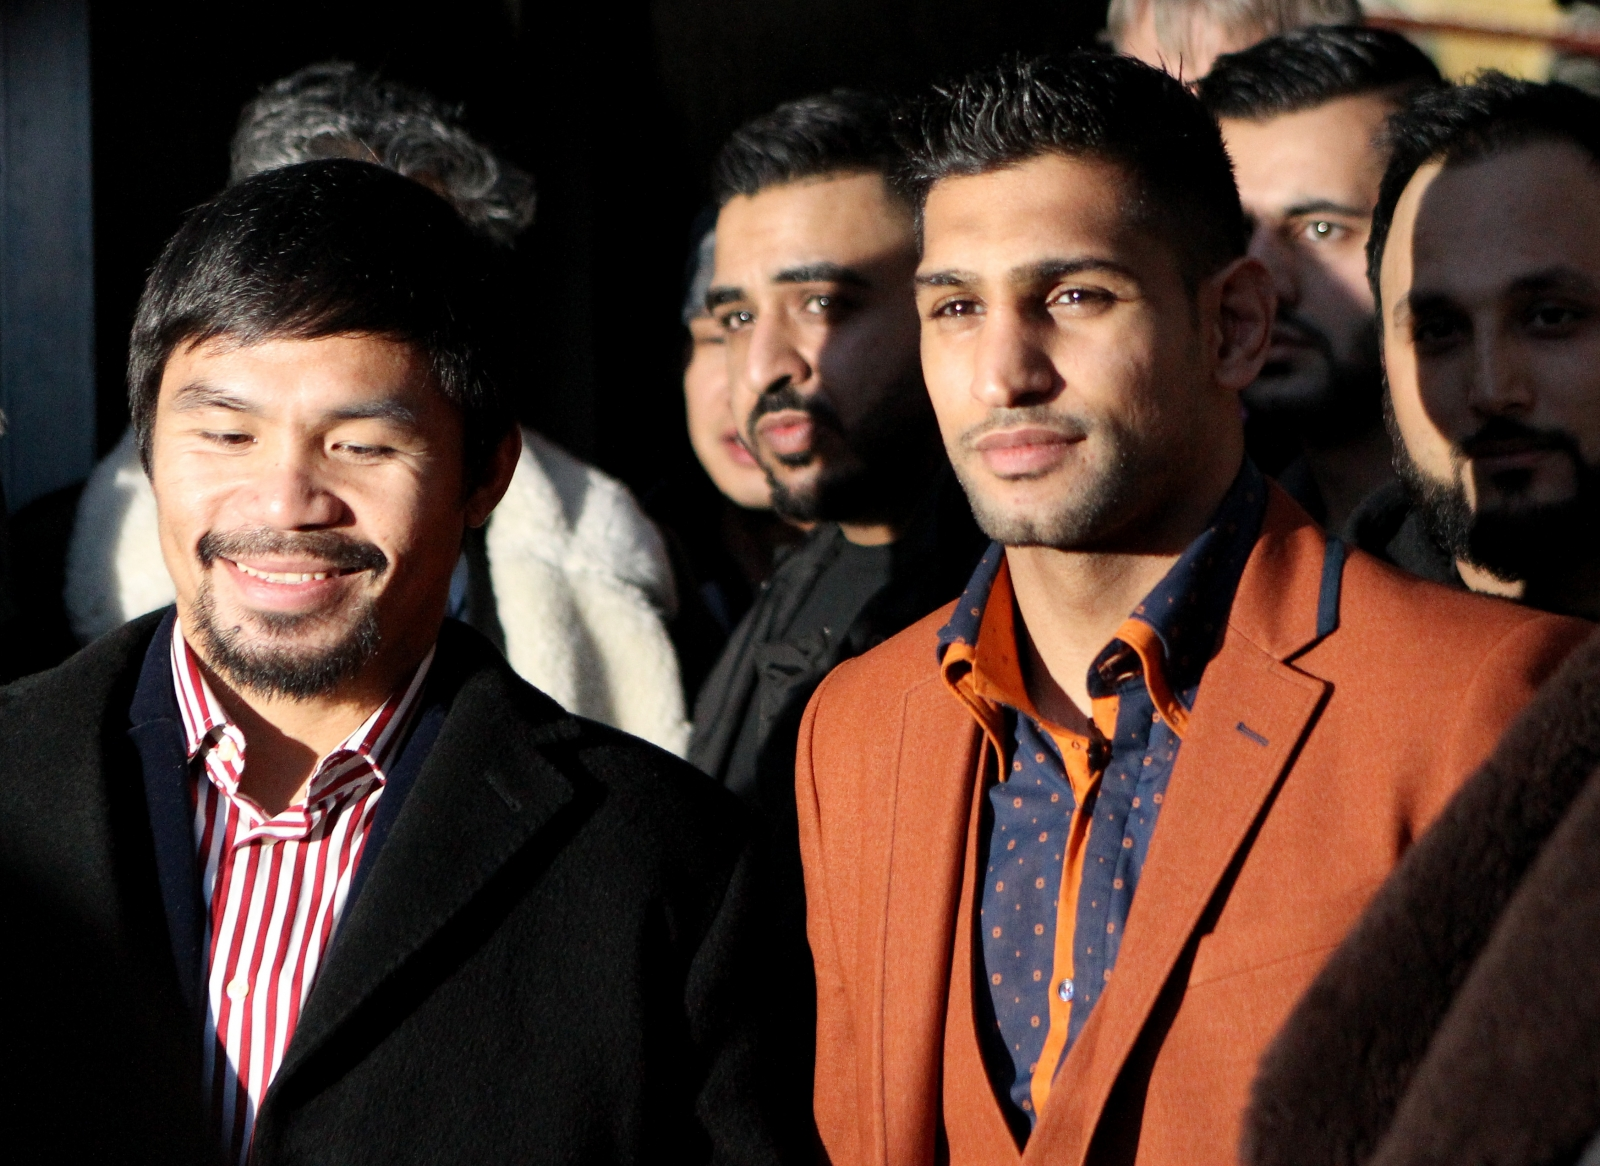 Manny Pacquiao announces he is in negotiations with Amir Khan